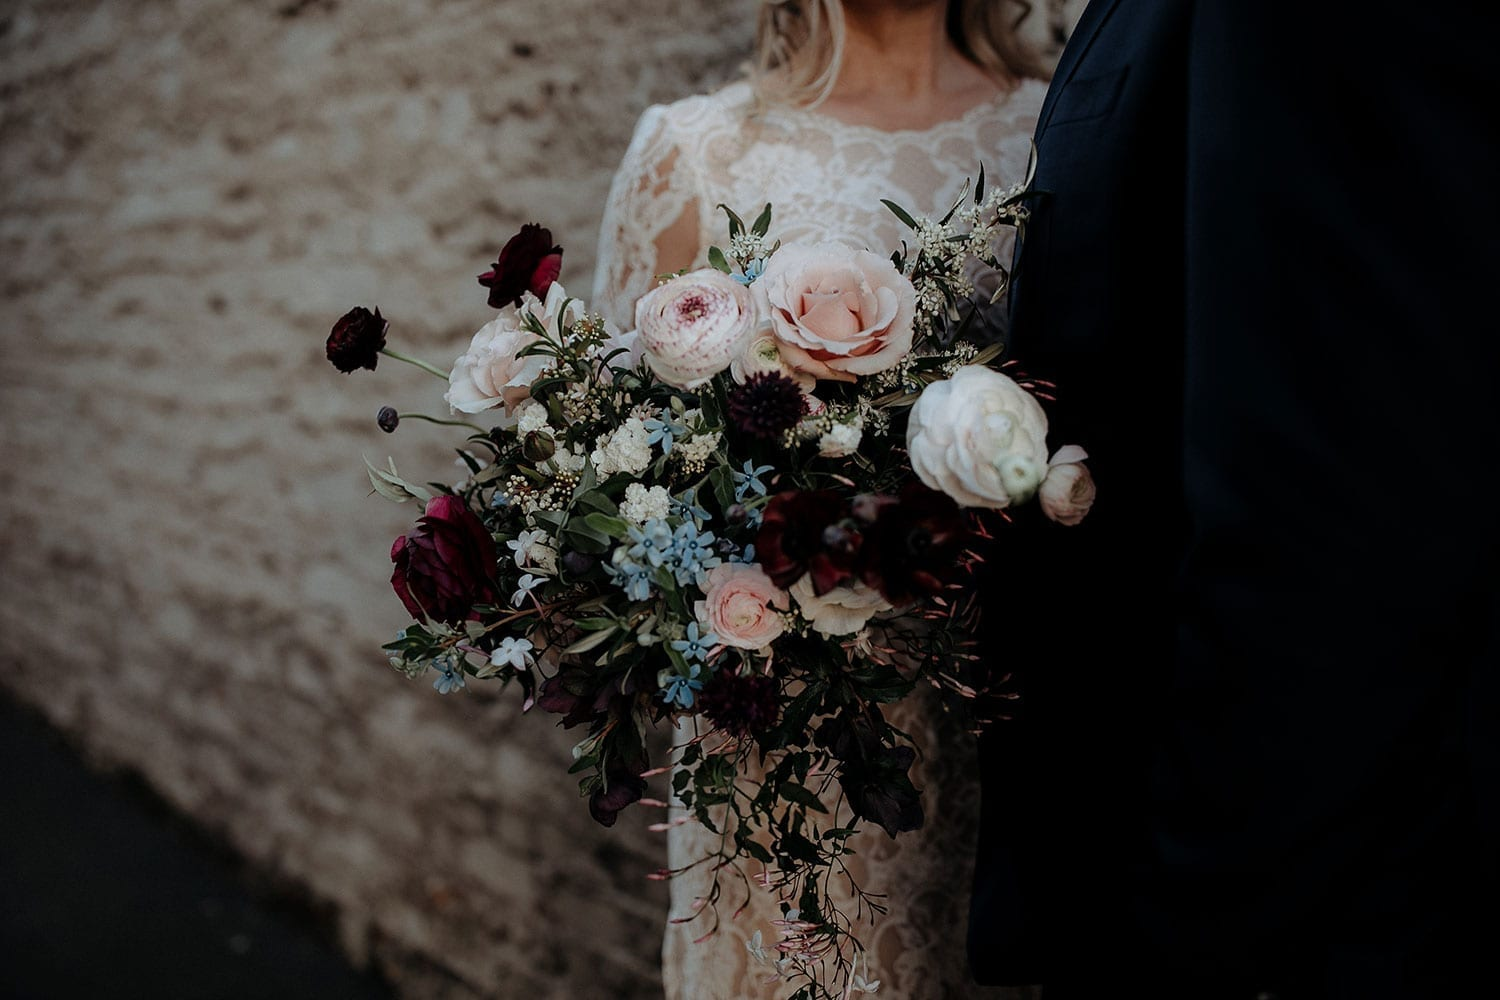 Vinka Design Features Real Weddings - Vinka Design Features Real Weddings - Jan in custom designed wedding dress with bouquet